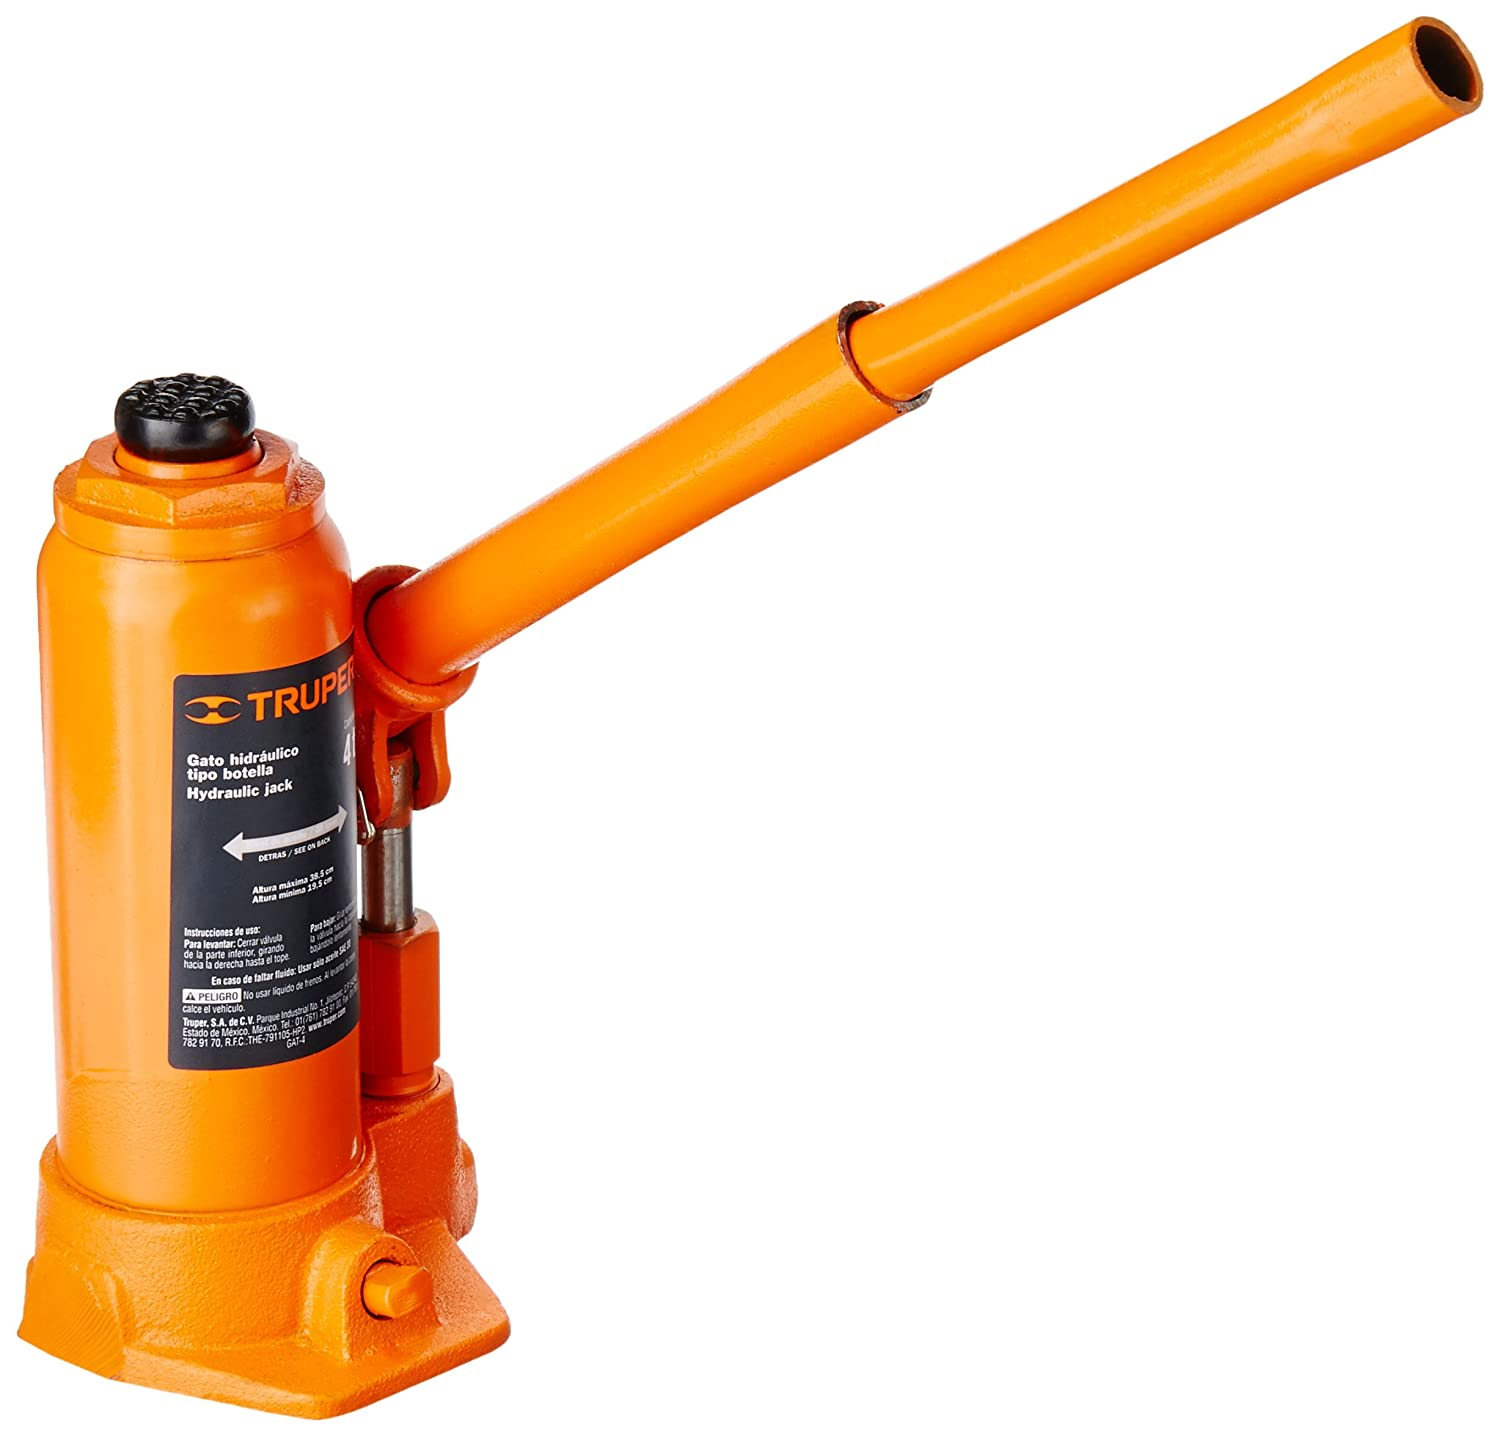 Amazon.com: TRUPER GAT-4 4-Ton Hydraulic Bottle Jacks 15 5/32